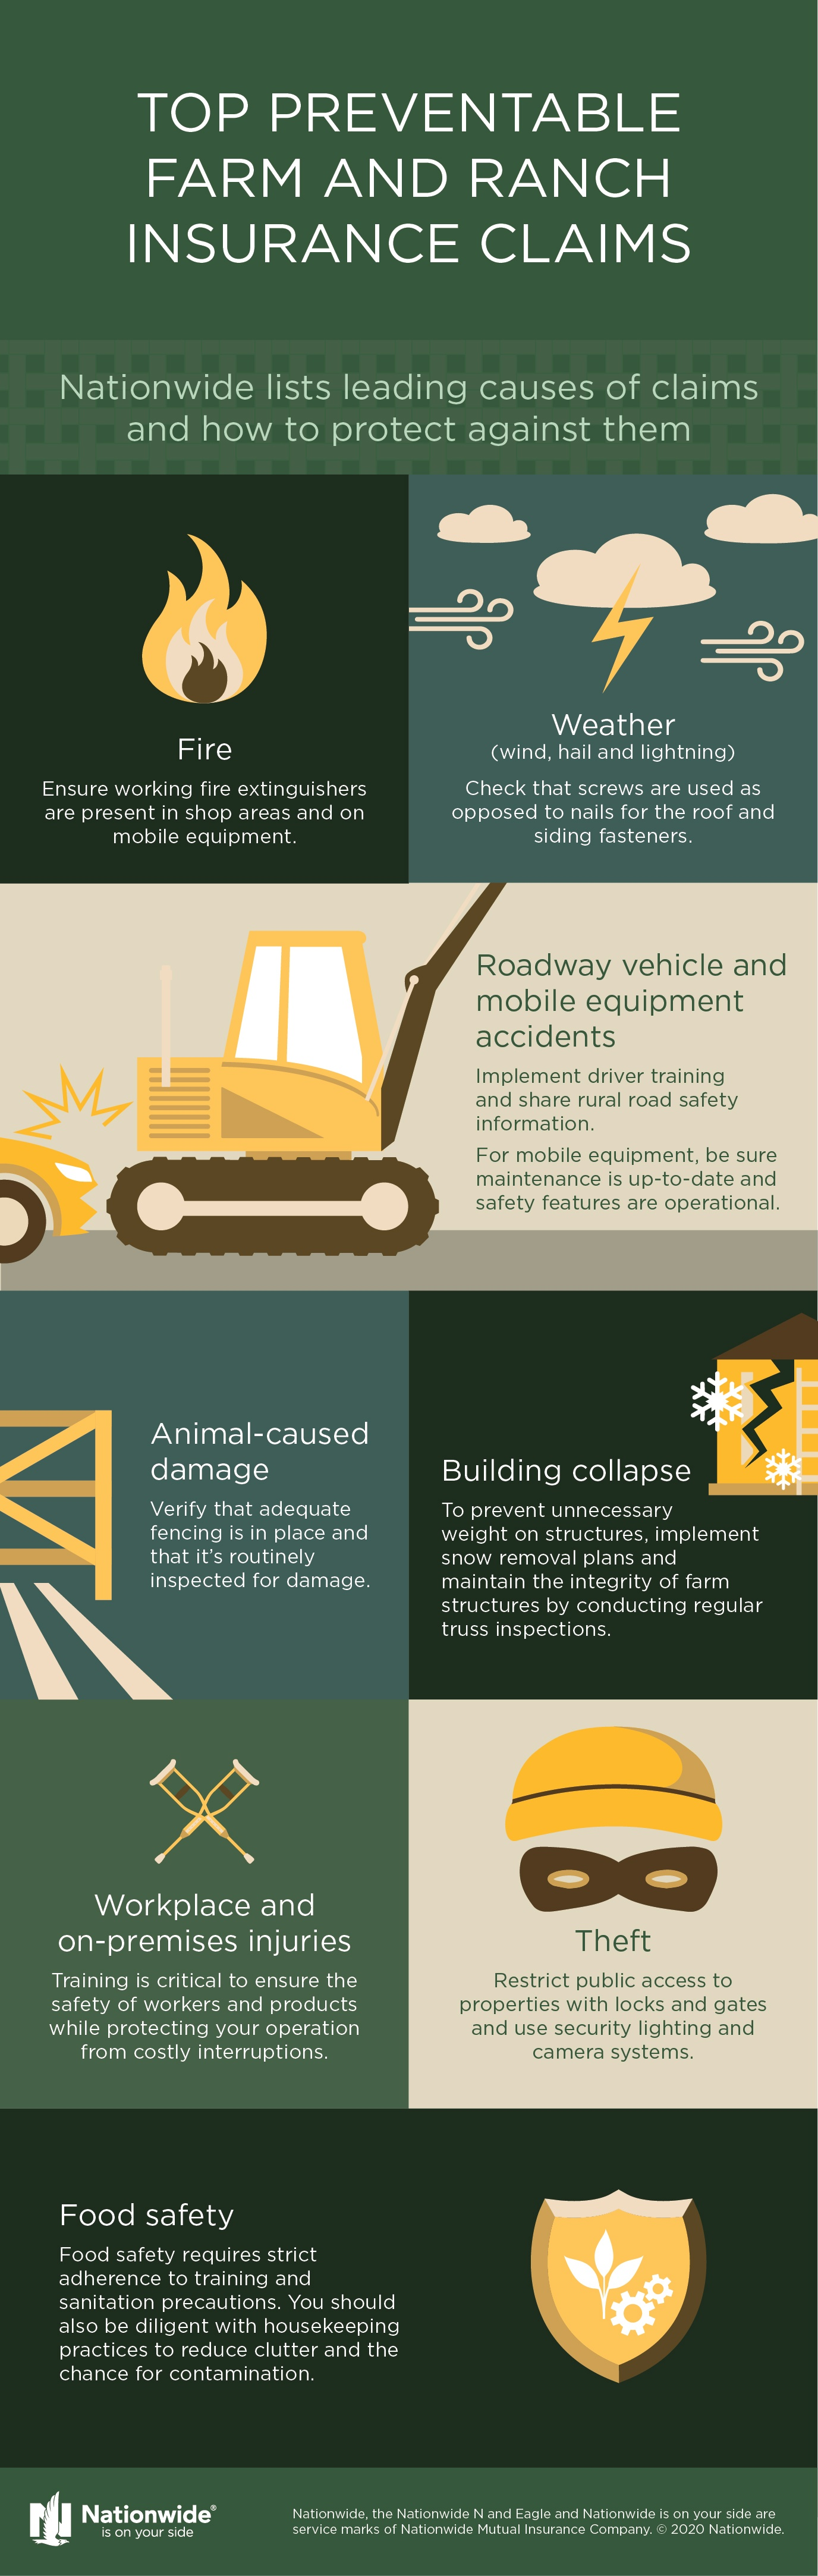 top preventable farm and ranch insurance claims infographic